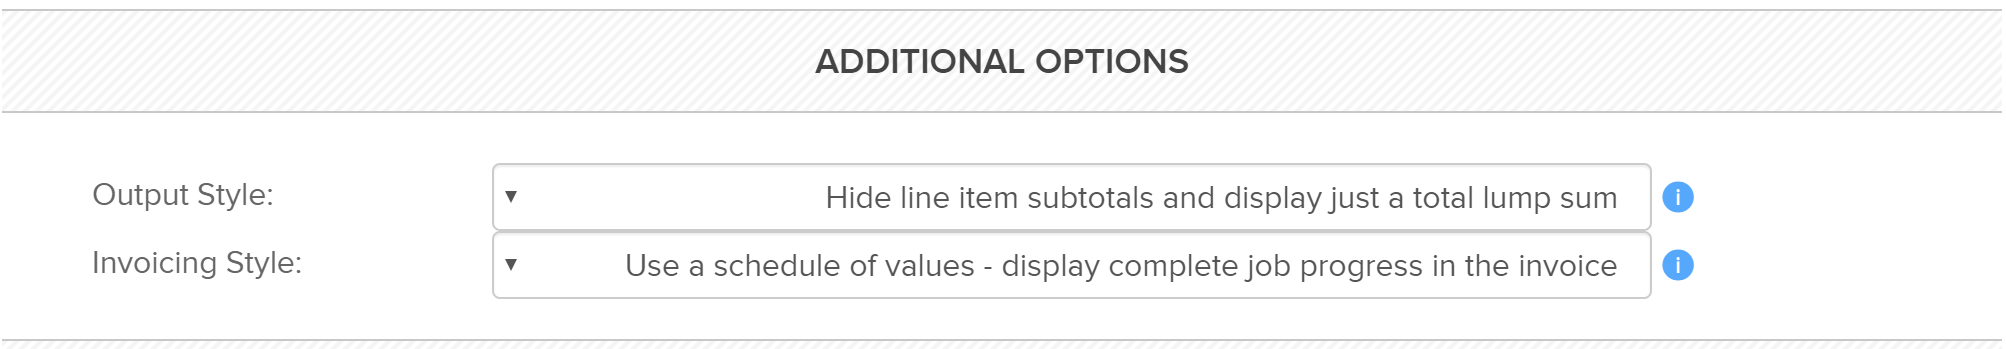 additionalcontractoptions Additional Contract Options